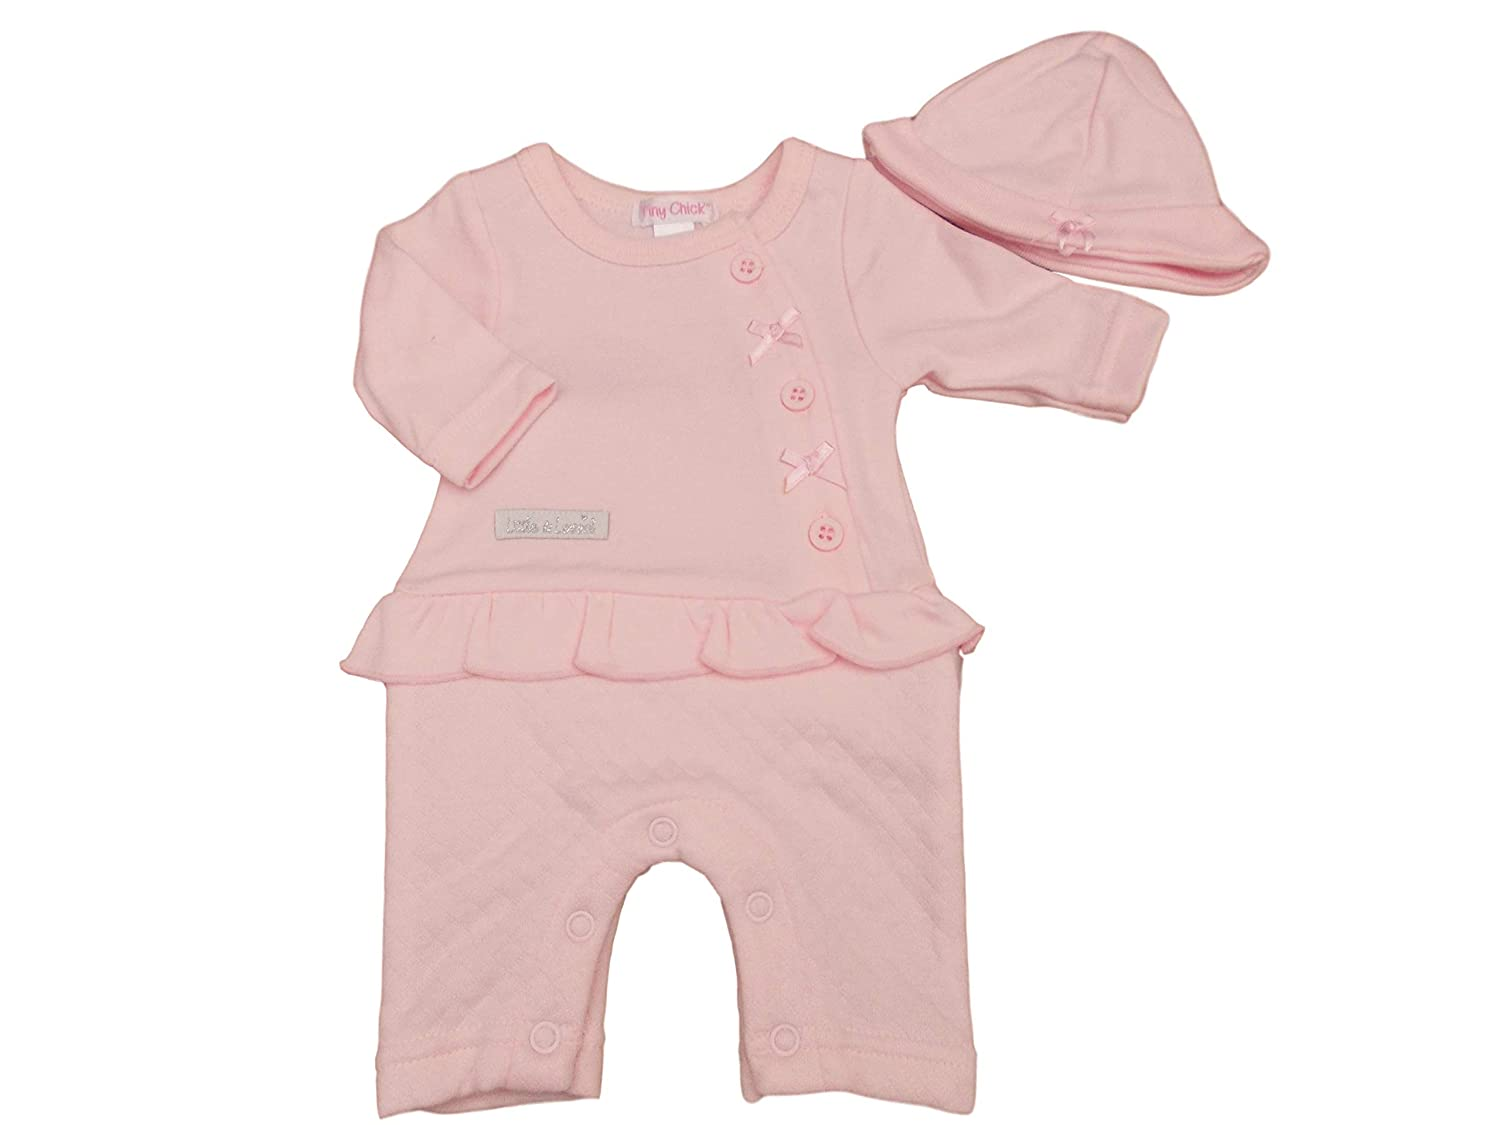 Baby Chick Premature All in one Romper Suit /& Hat Set